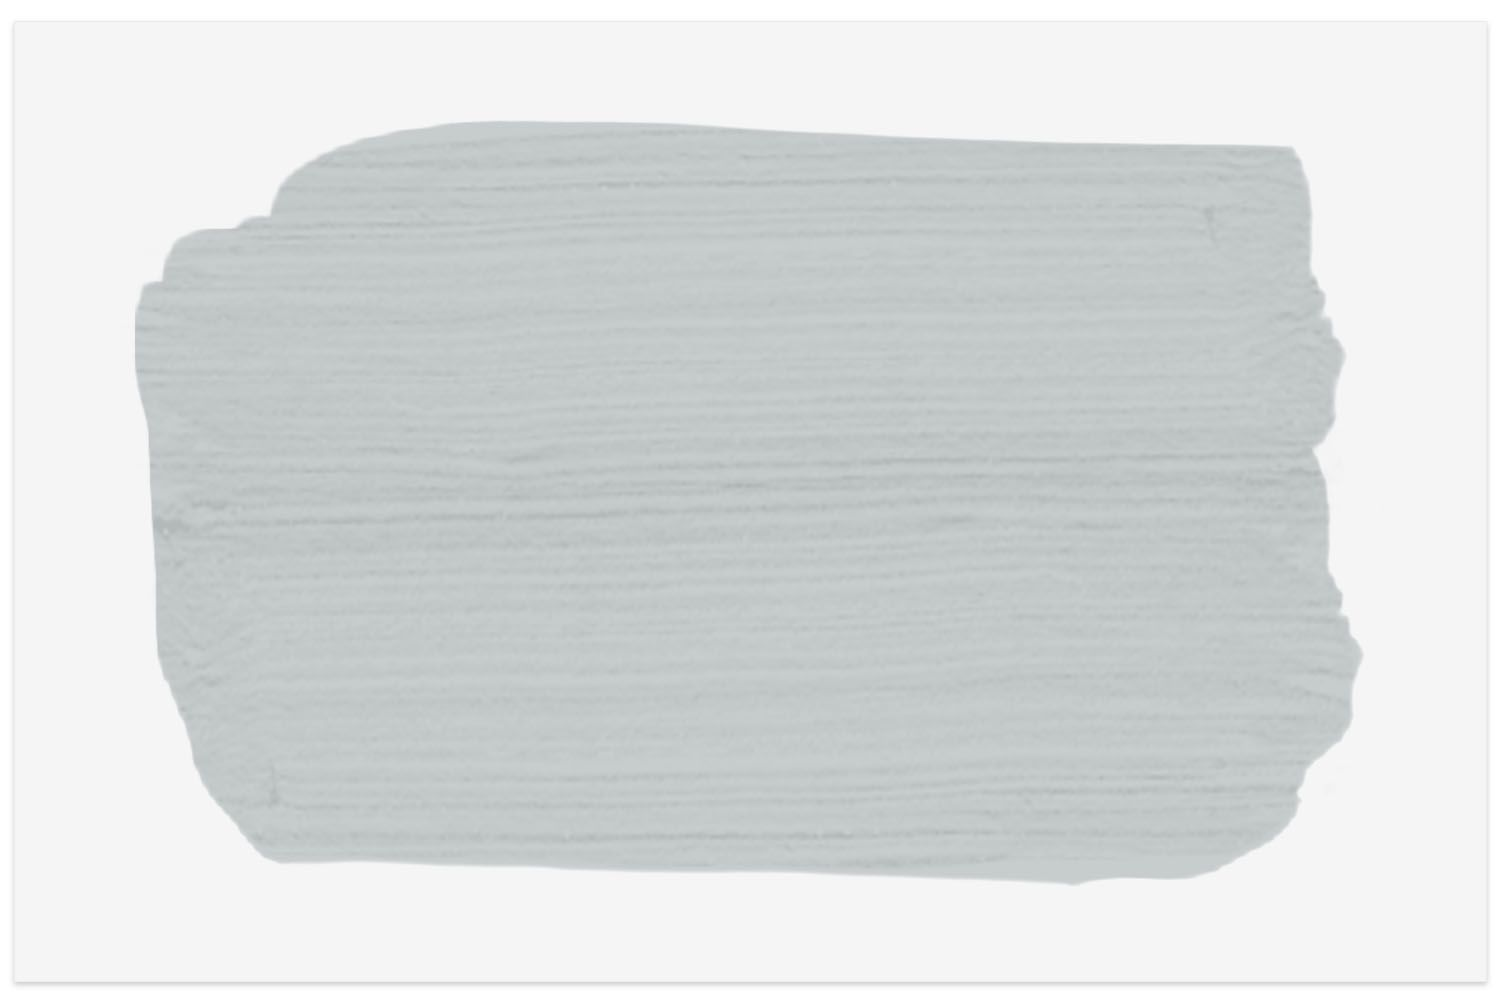 Pelican Gray by Benjamin Moore paint swatch